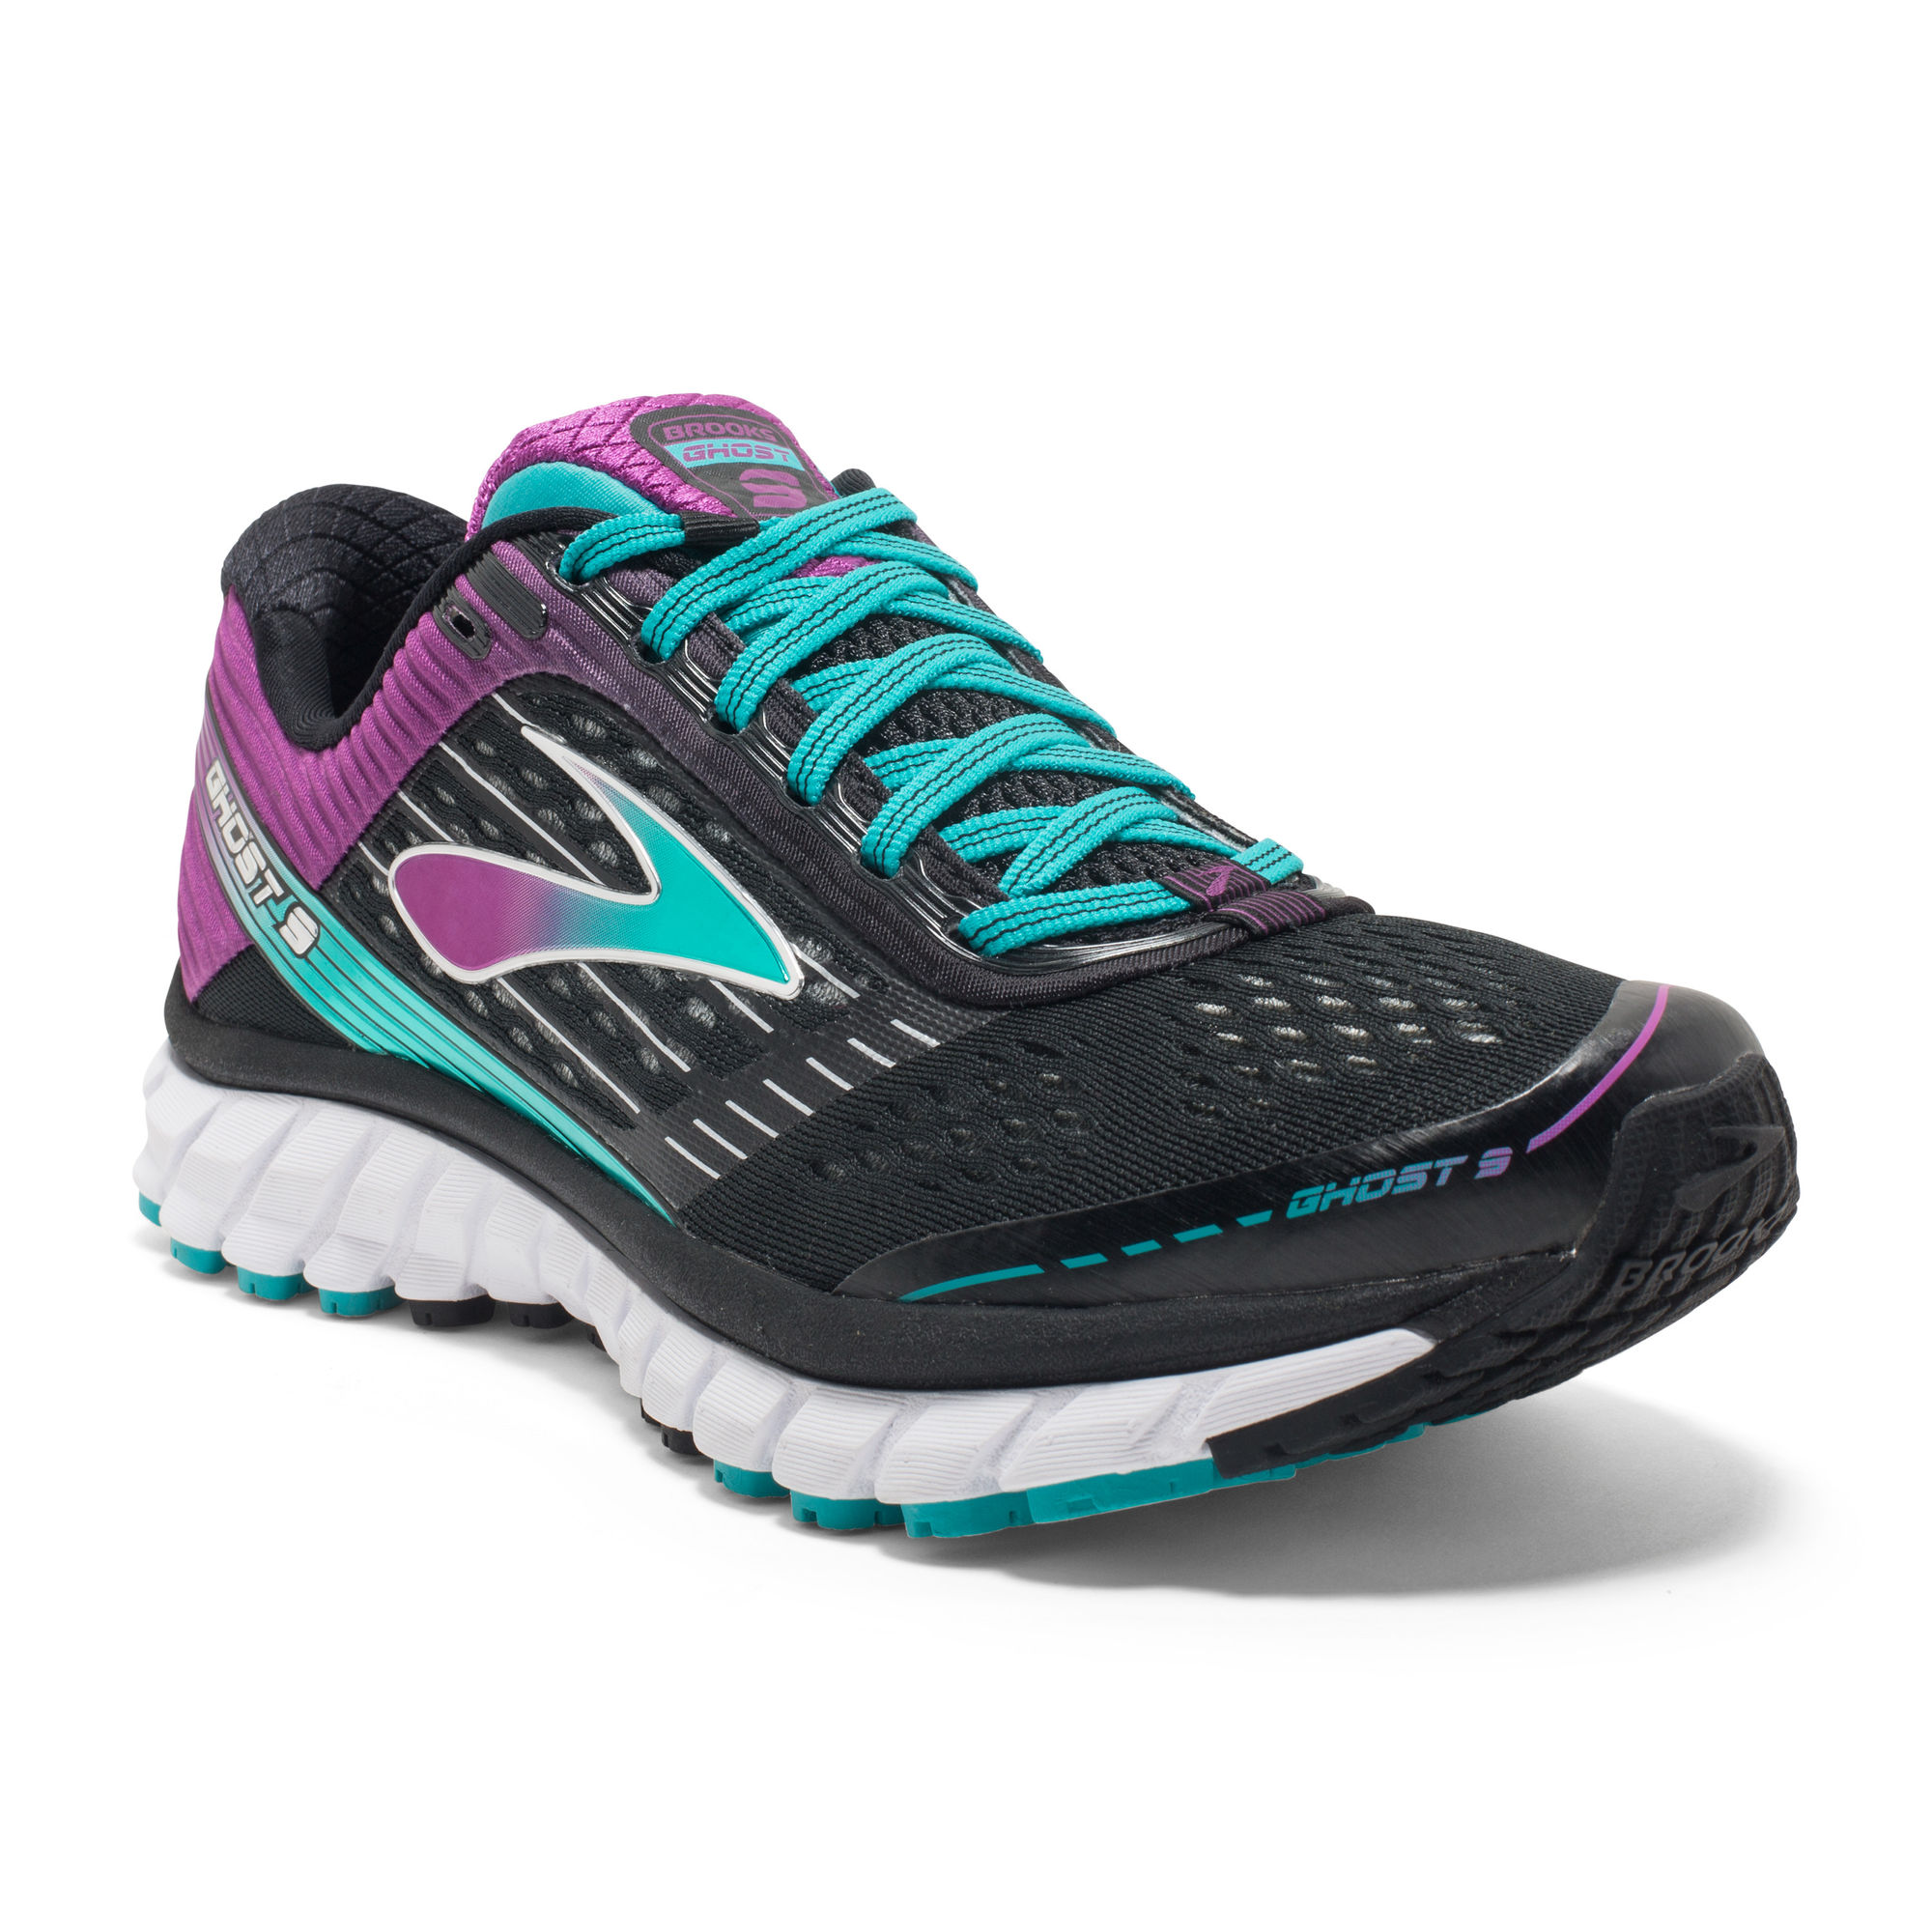 Brooks Lady Ghost 9 2A in Black/Sparkling Grape